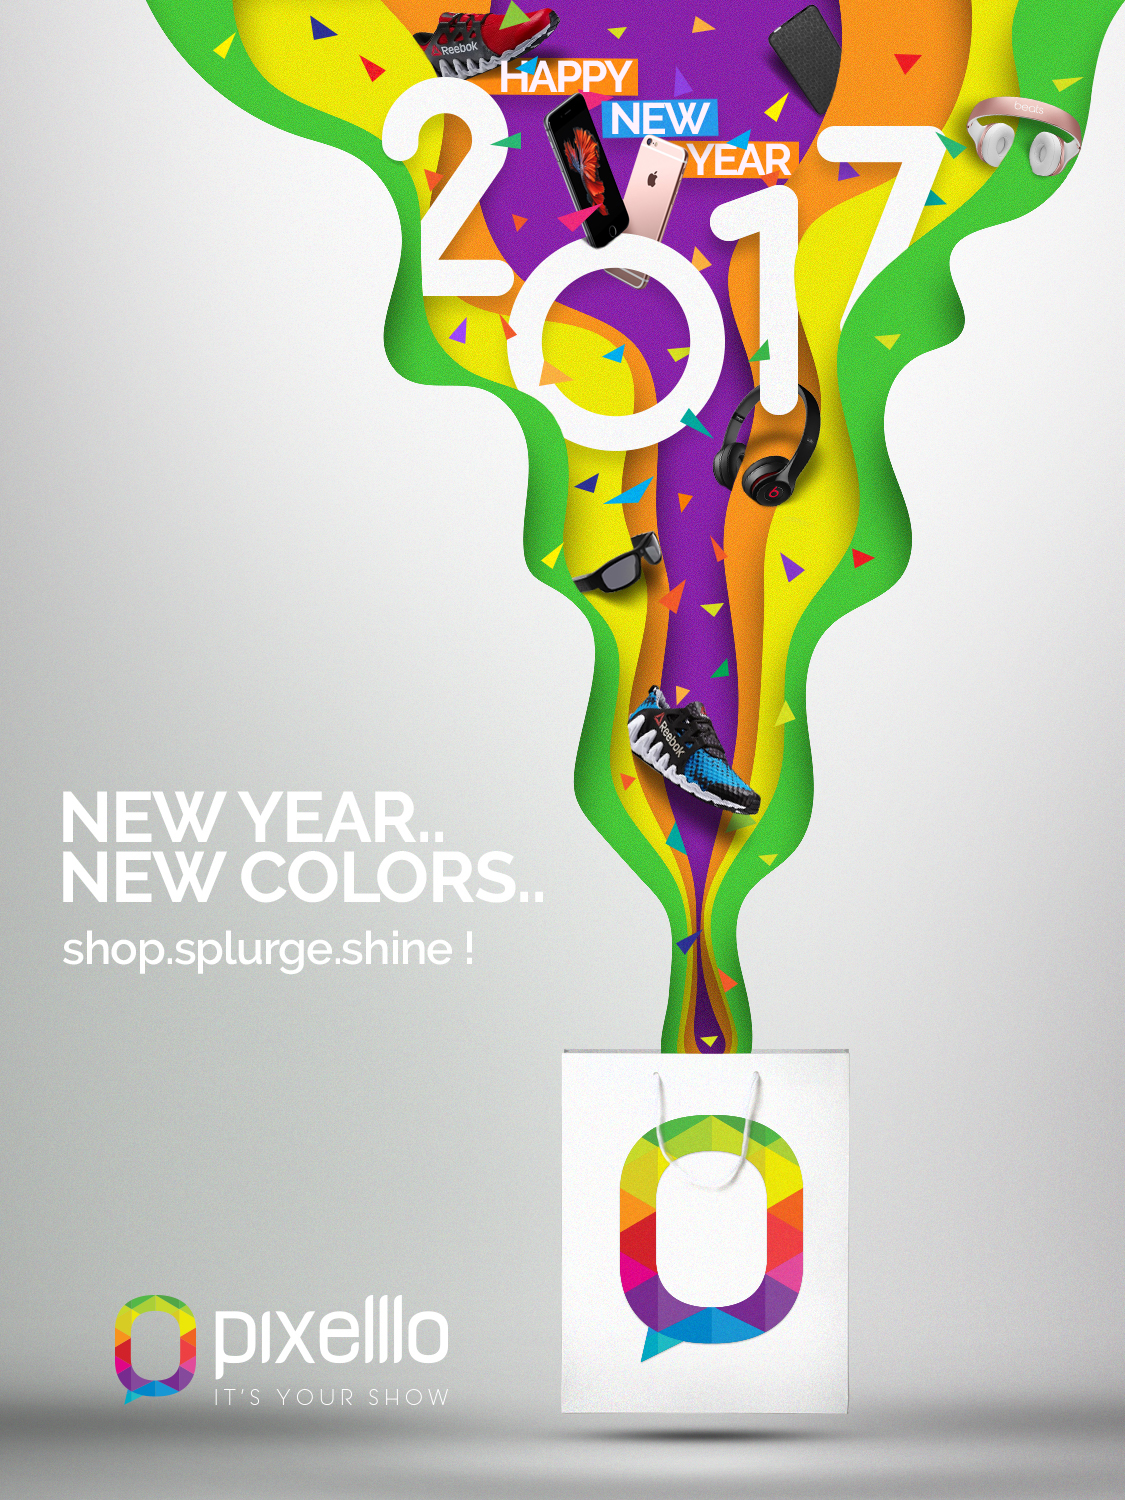 New Year Greetings From Pixelllo On Behance